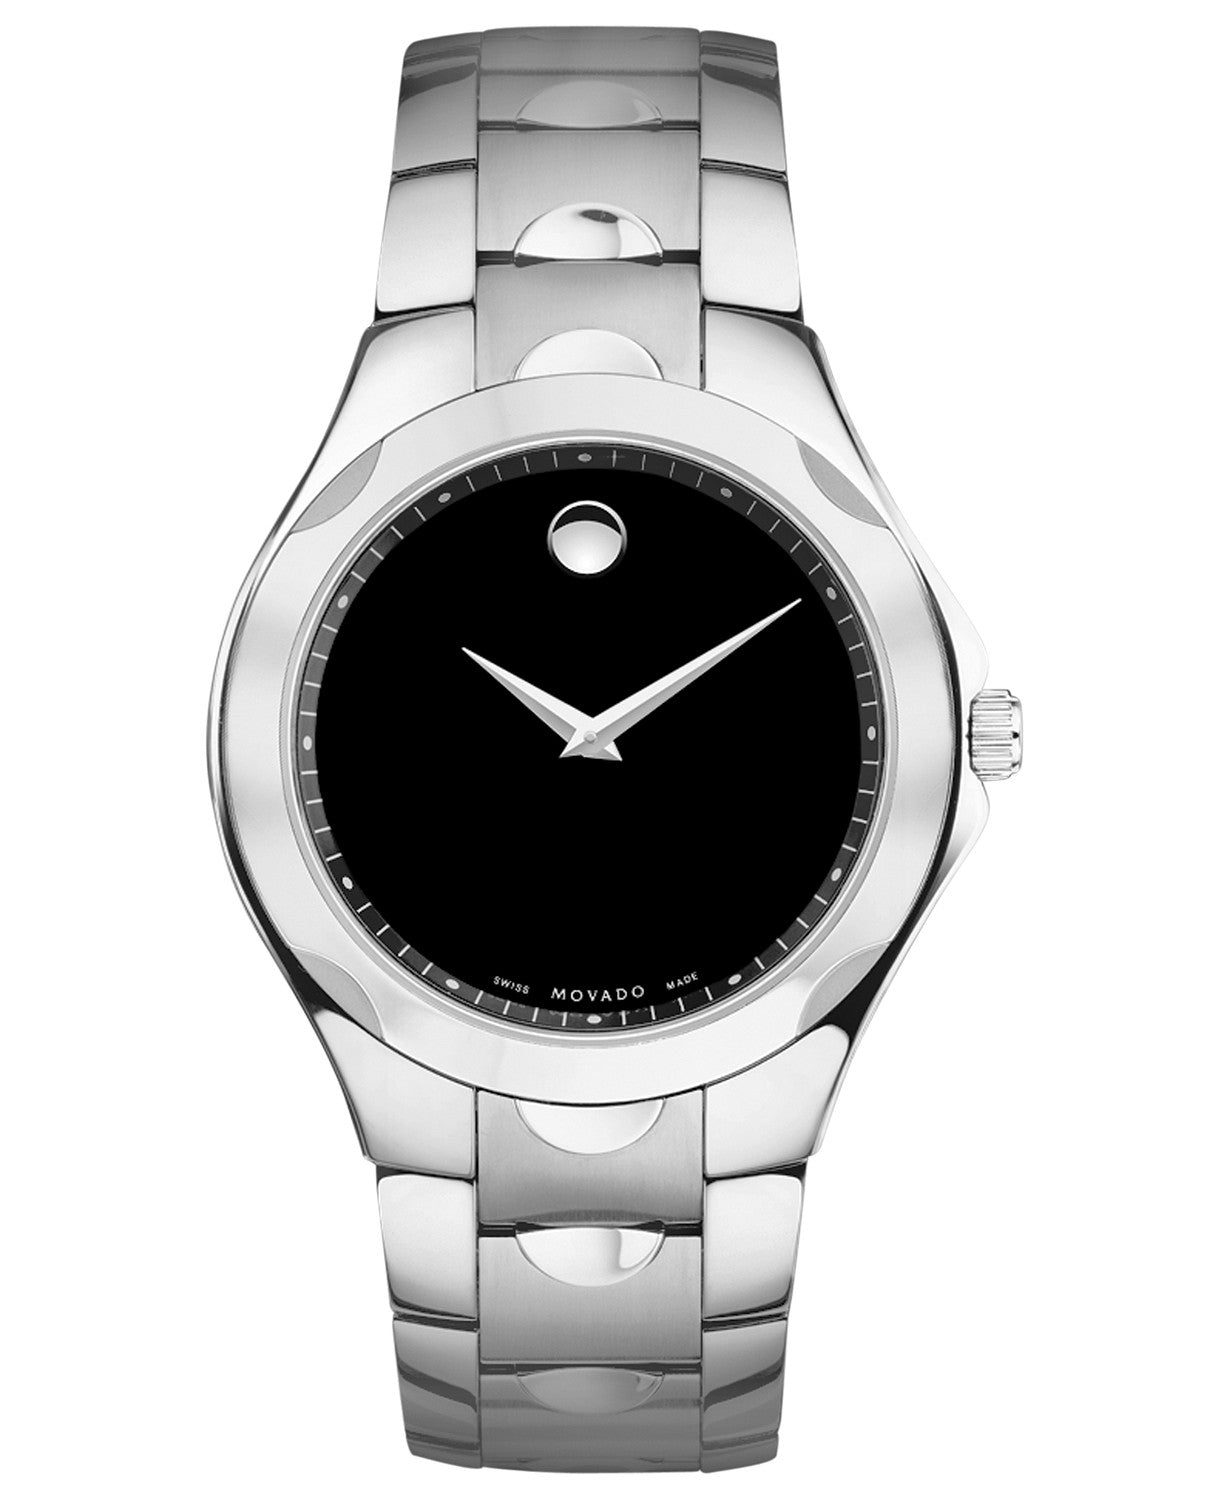 Movado Men's Swiss Stainless Steel Watch 0606378